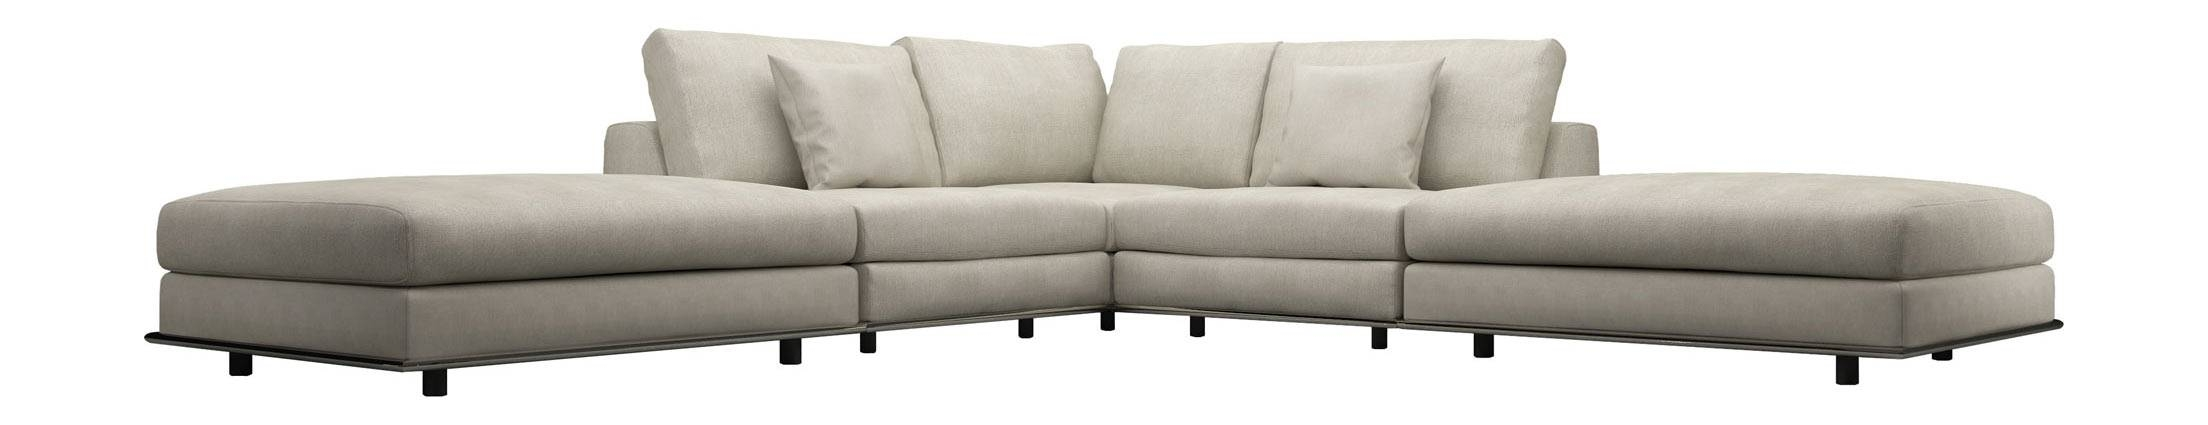 Perry Armless Corner Sectional Sofa Moonbeammodloft with Armless Sectional Sofas (Image 20 of 30)